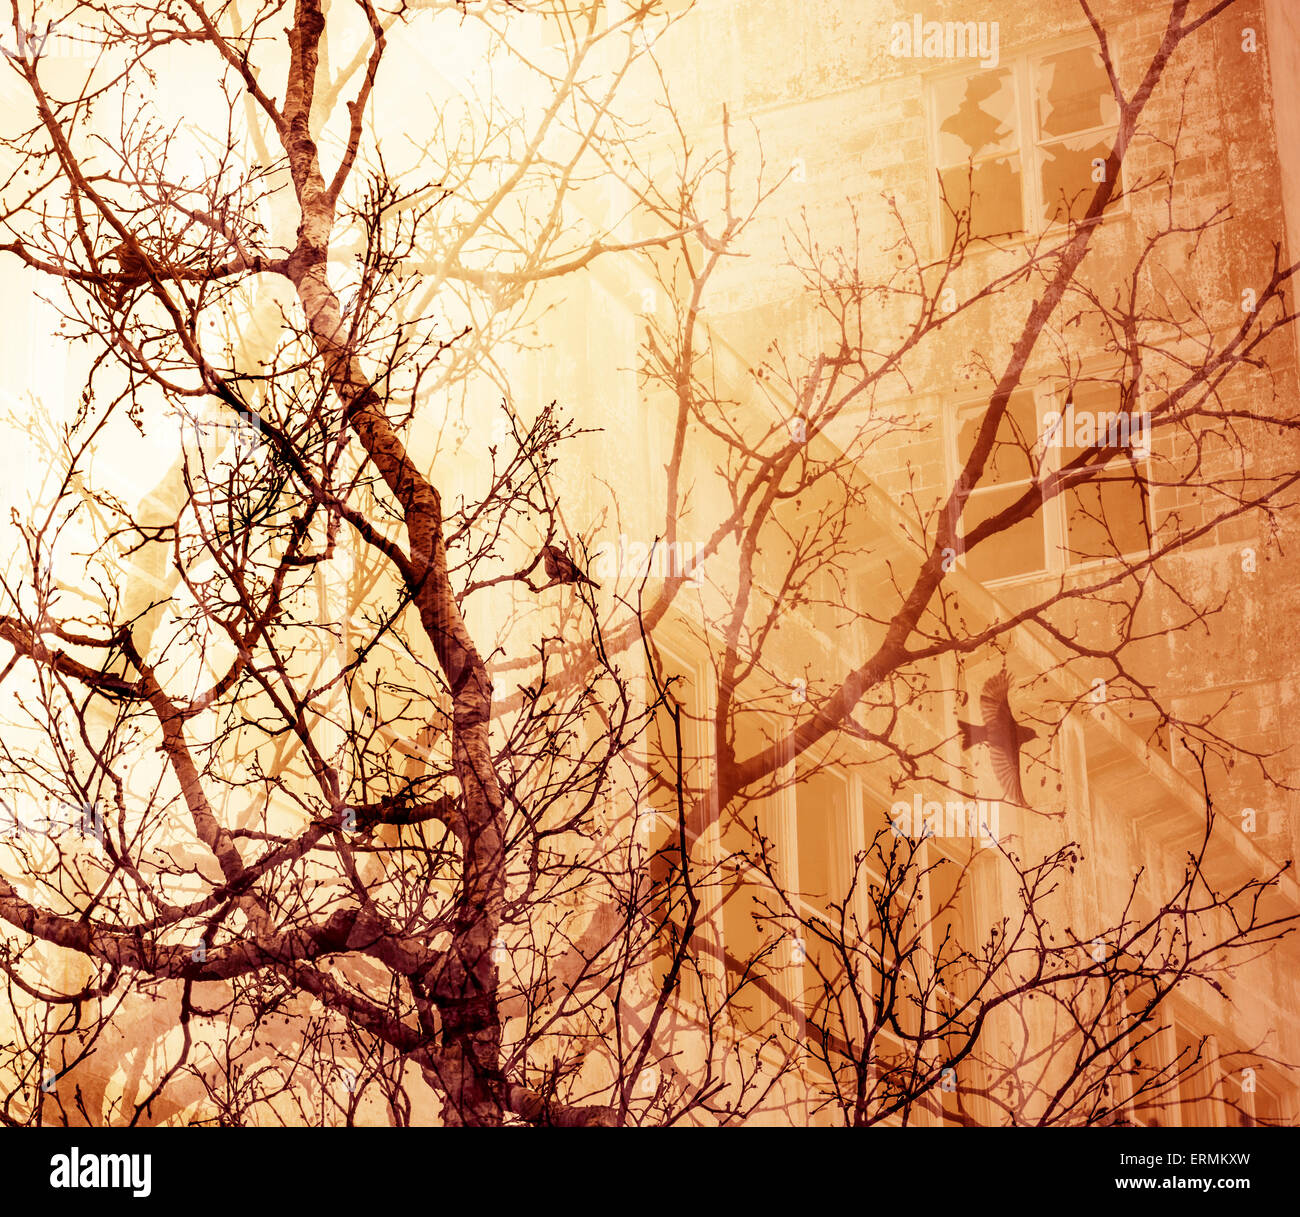 Bare tree branches with birds overlaid with an abandoned building for a dream-like look. - Stock Image